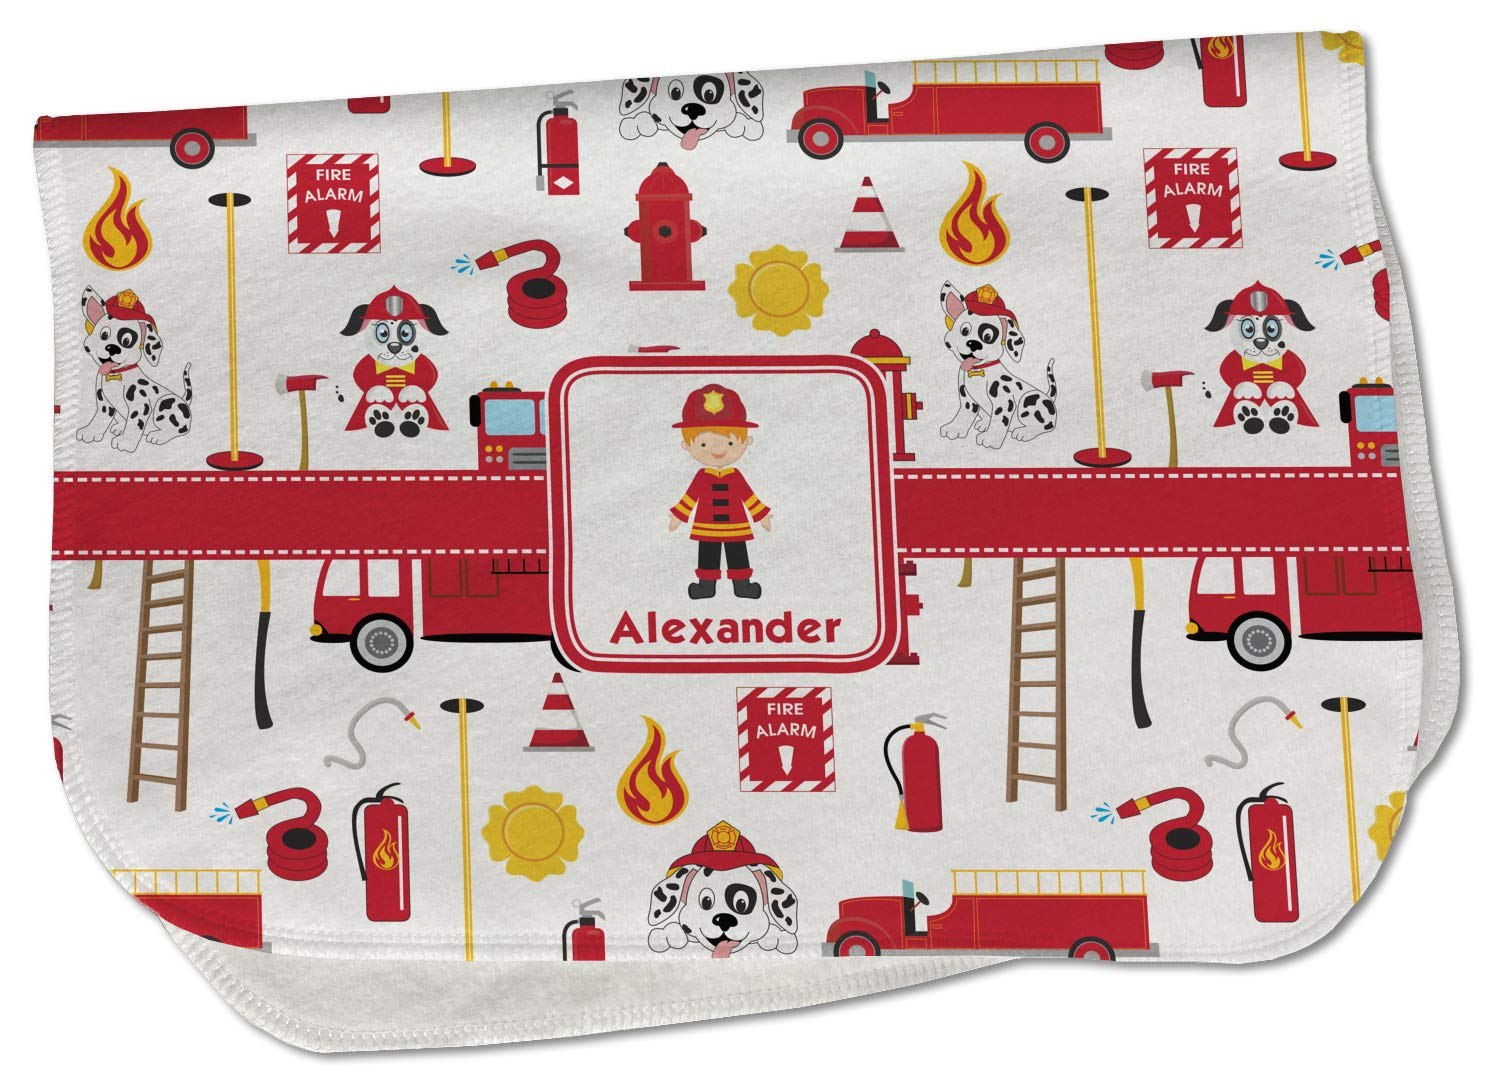 Firefighter Character Burp Bargain sale Cloth - w Max 69% OFF Fleece Name or Text